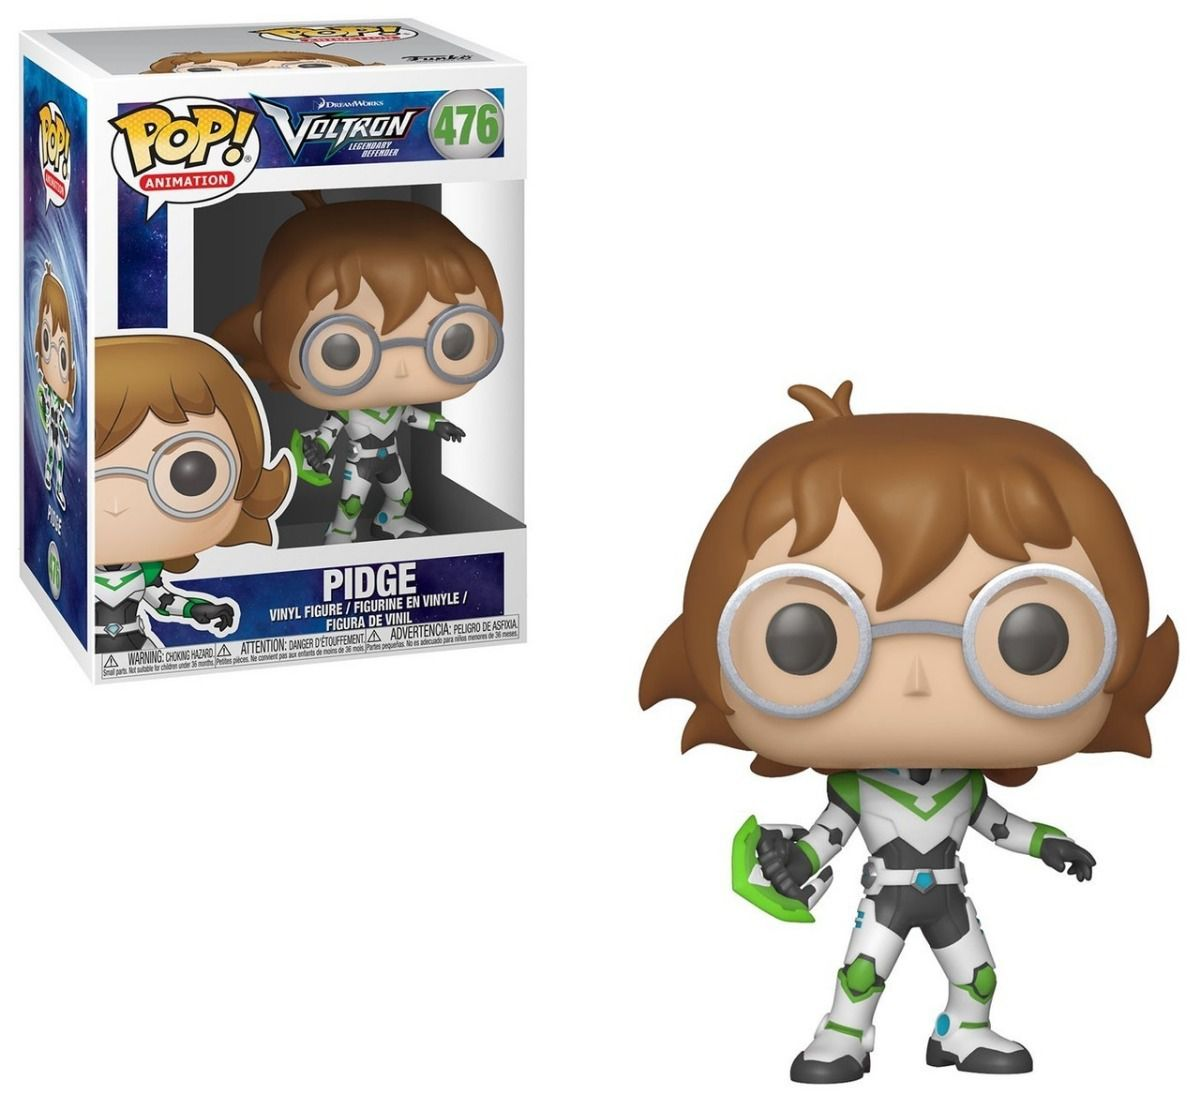 POP FUNKO 476 PIDGE VOLTRON